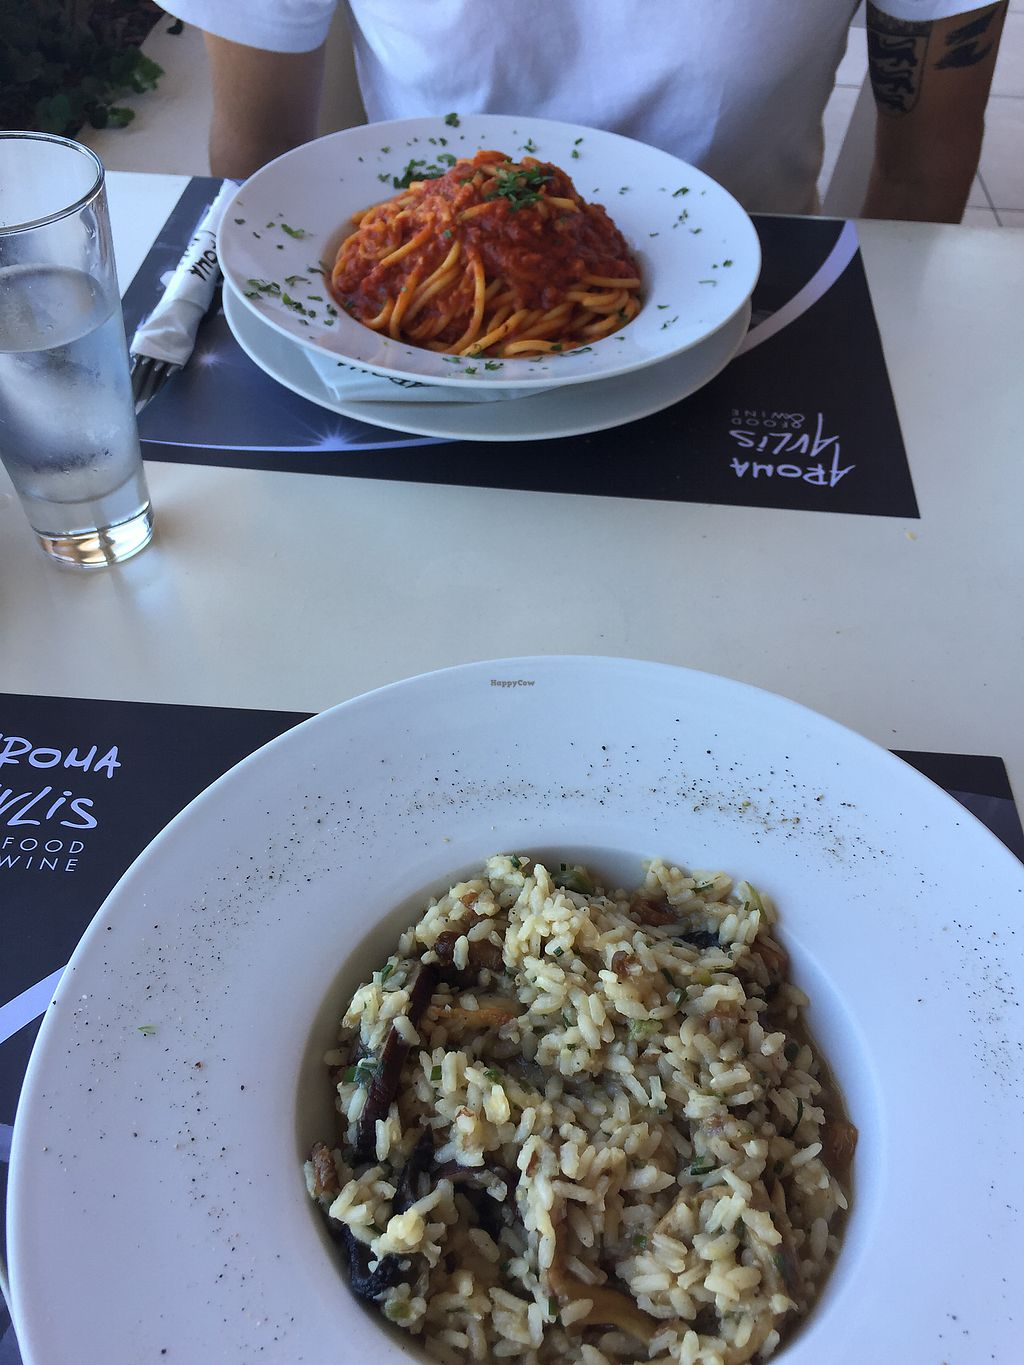 """Photo of Aroma Avlis  by <a href=""""/members/profile/indylille"""">indylille</a> <br/>Mushroom risotto and tomato pasta  <br/> September 19, 2017  - <a href='/contact/abuse/image/89325/305925'>Report</a>"""